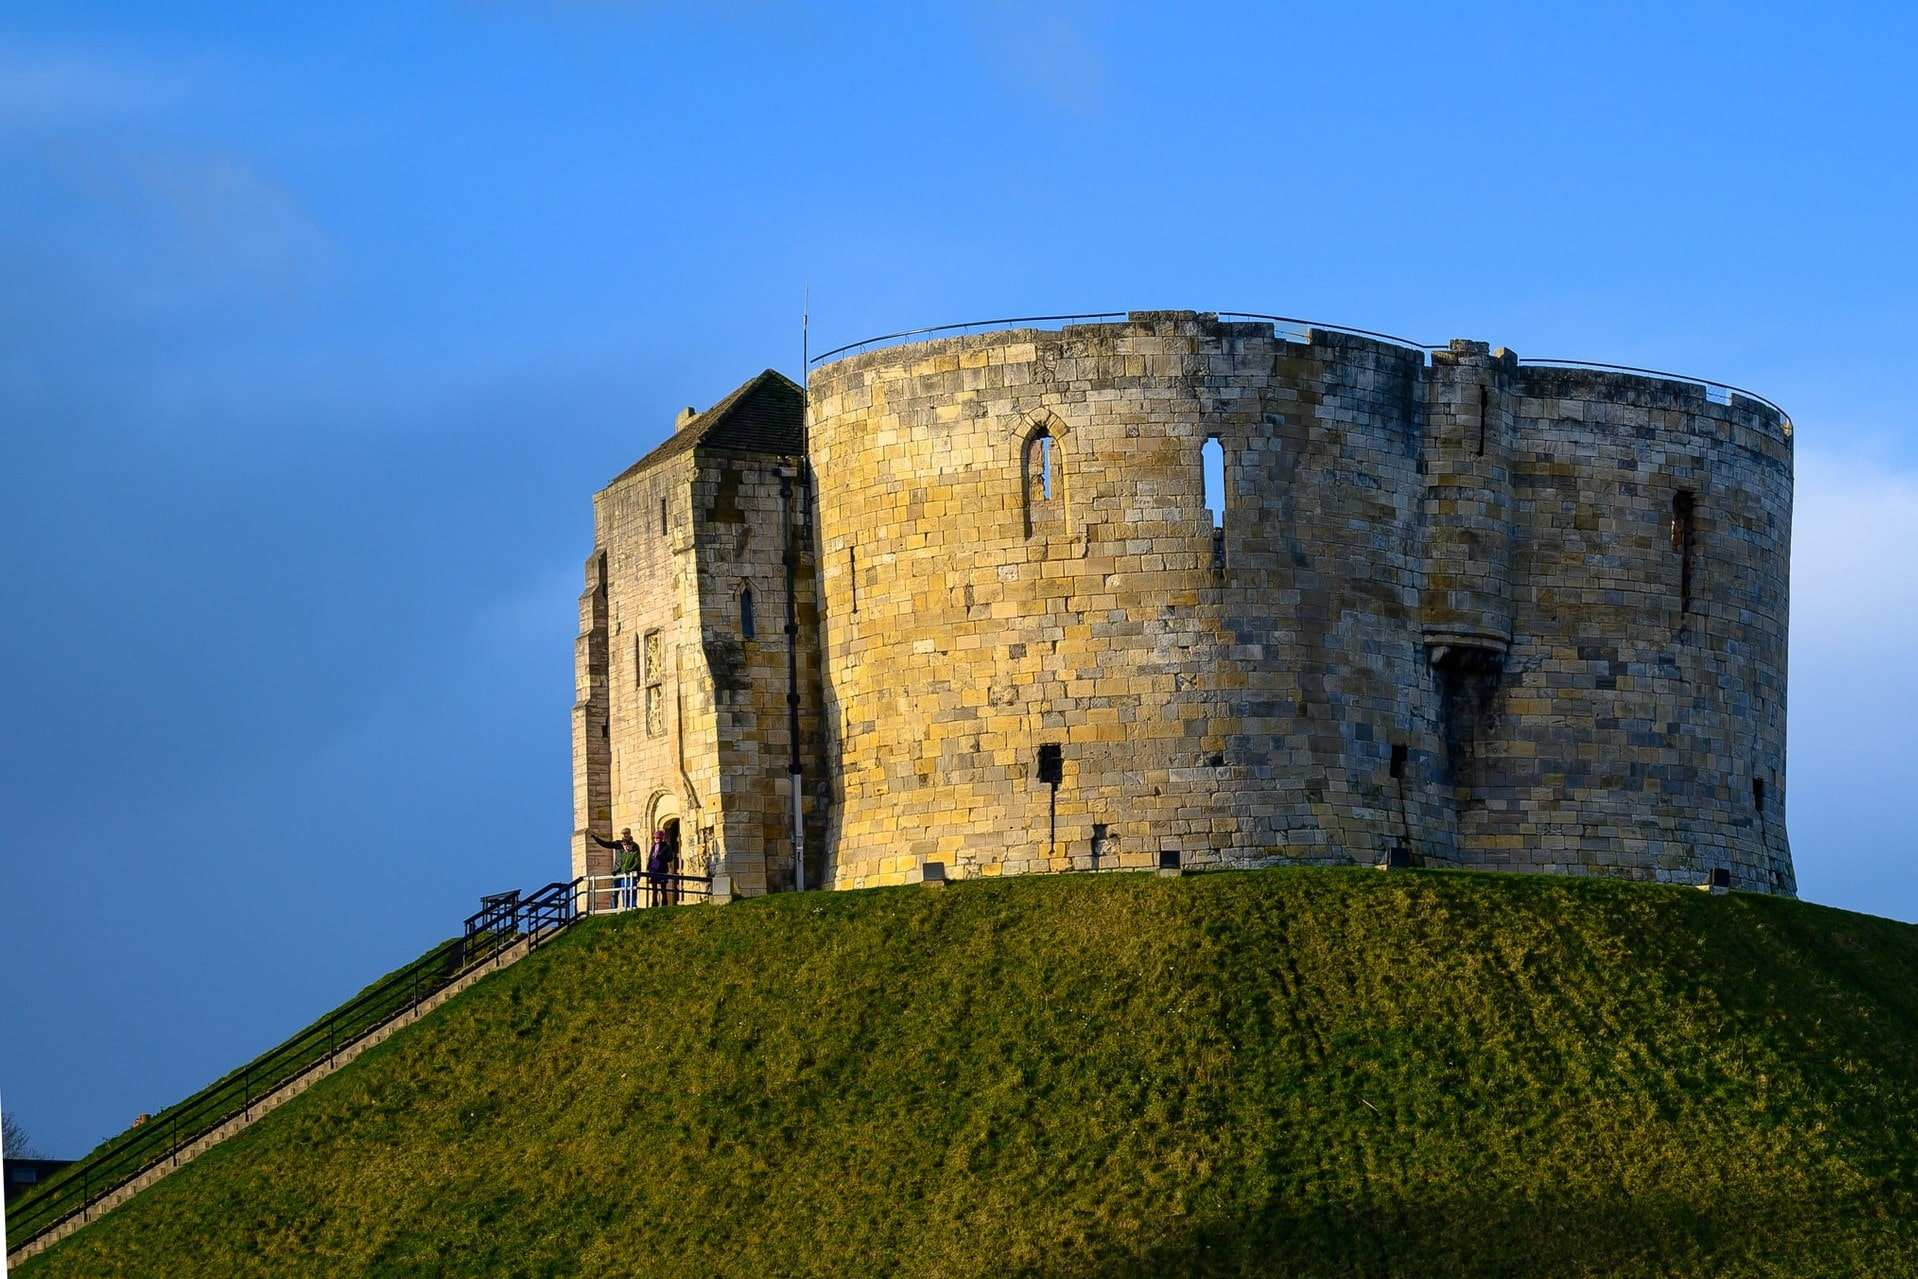 cliffords-tower-on-top-of-hill-at-sunset